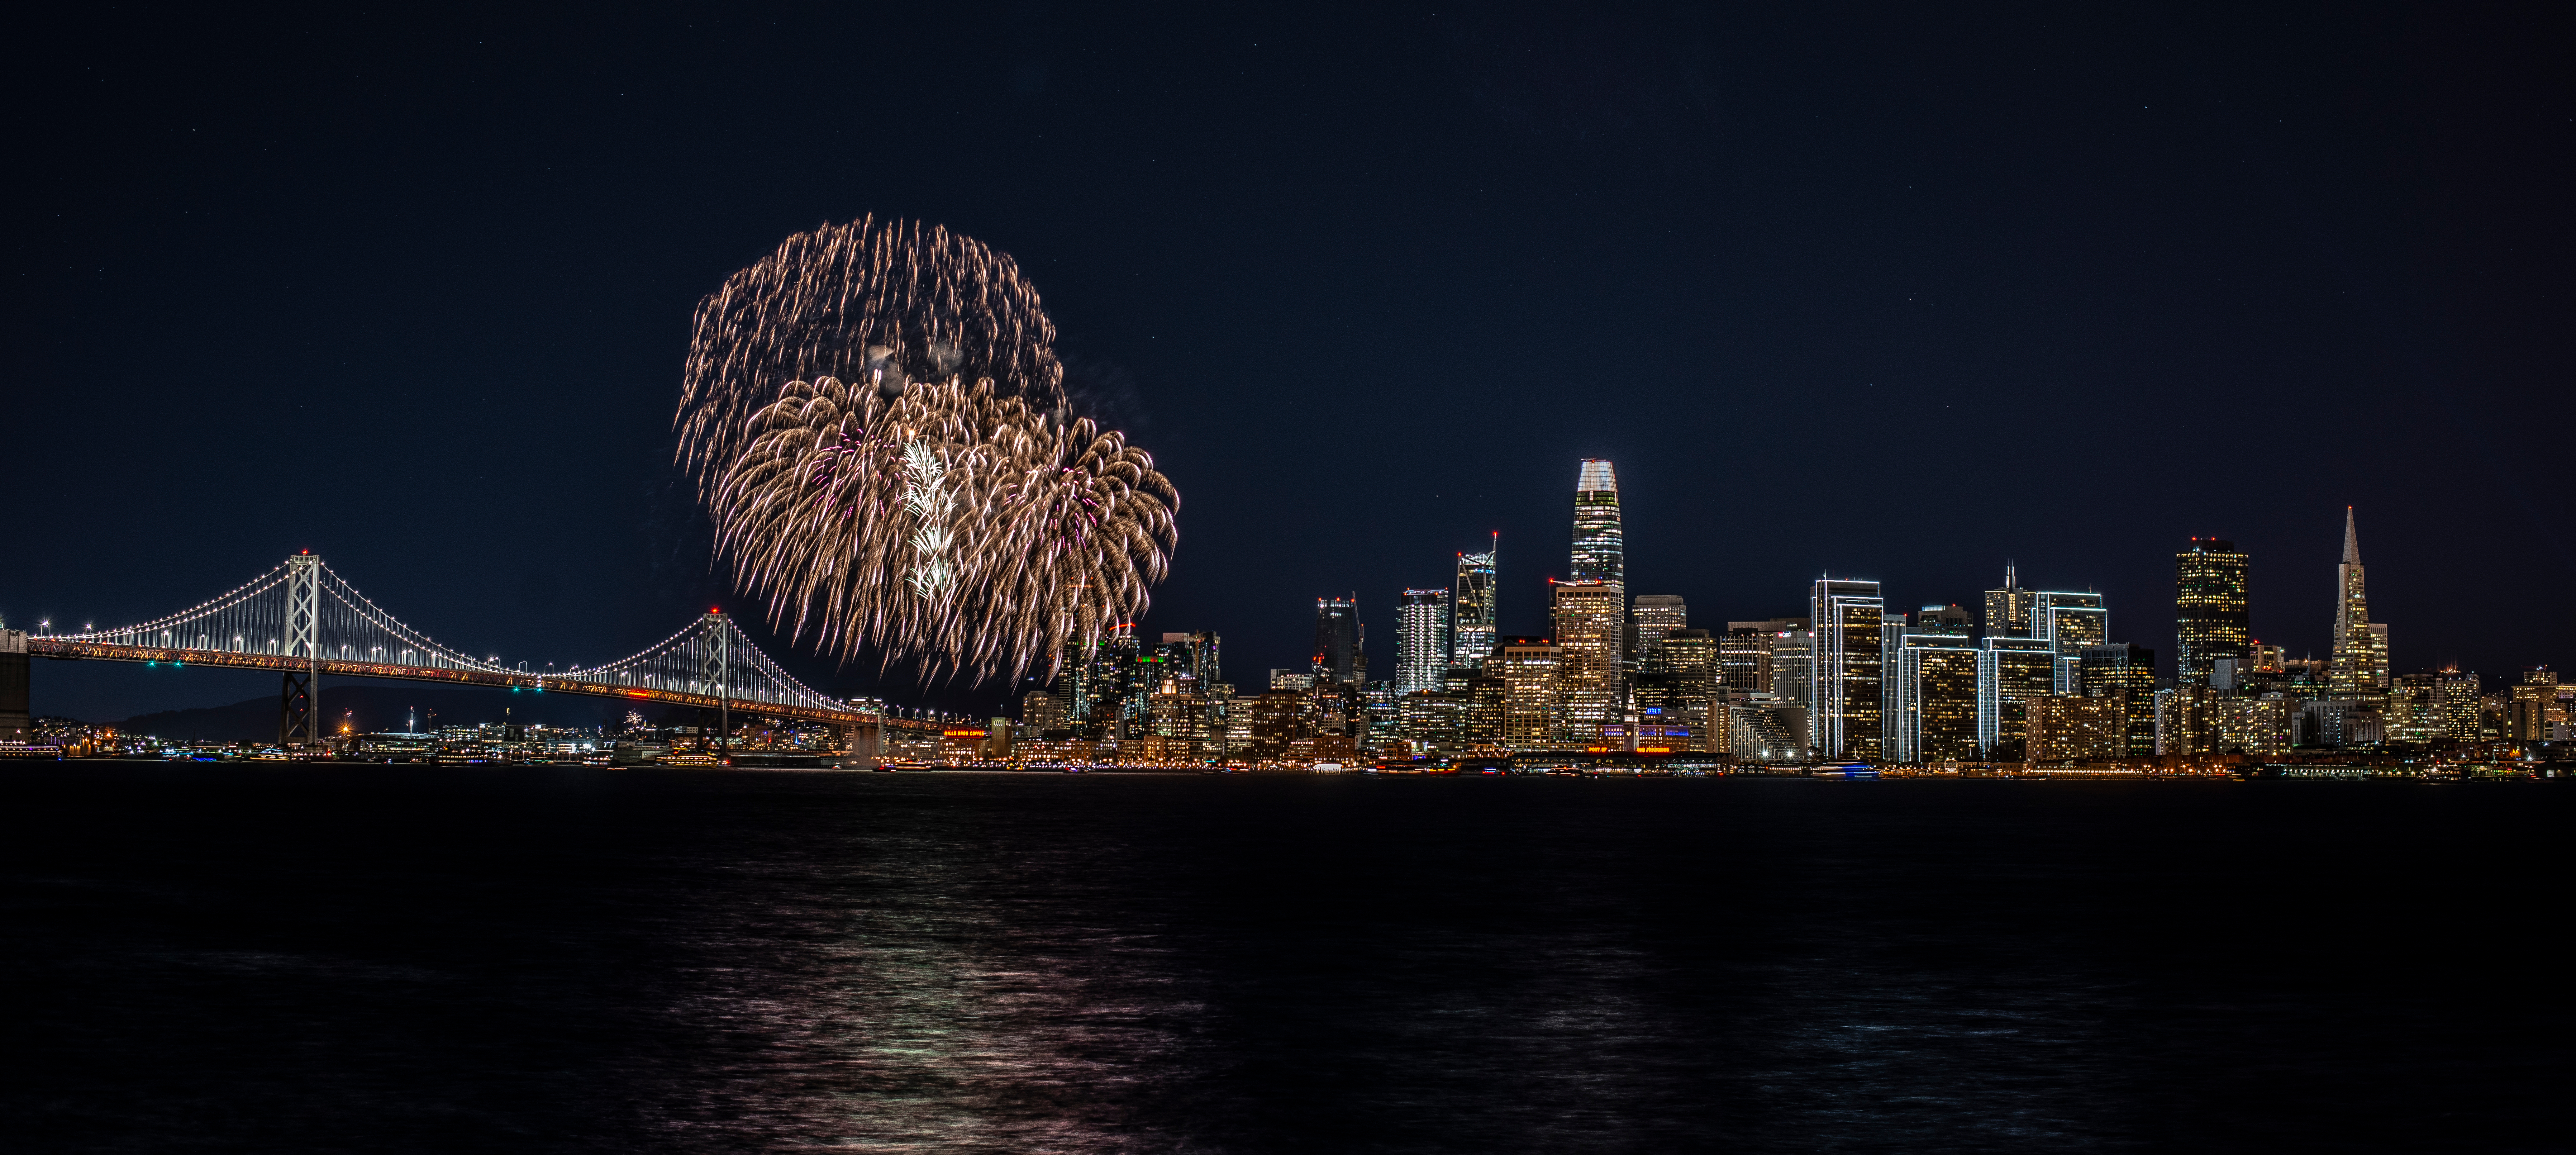 New Year's Day fireworks light up the night sky in San Francisco